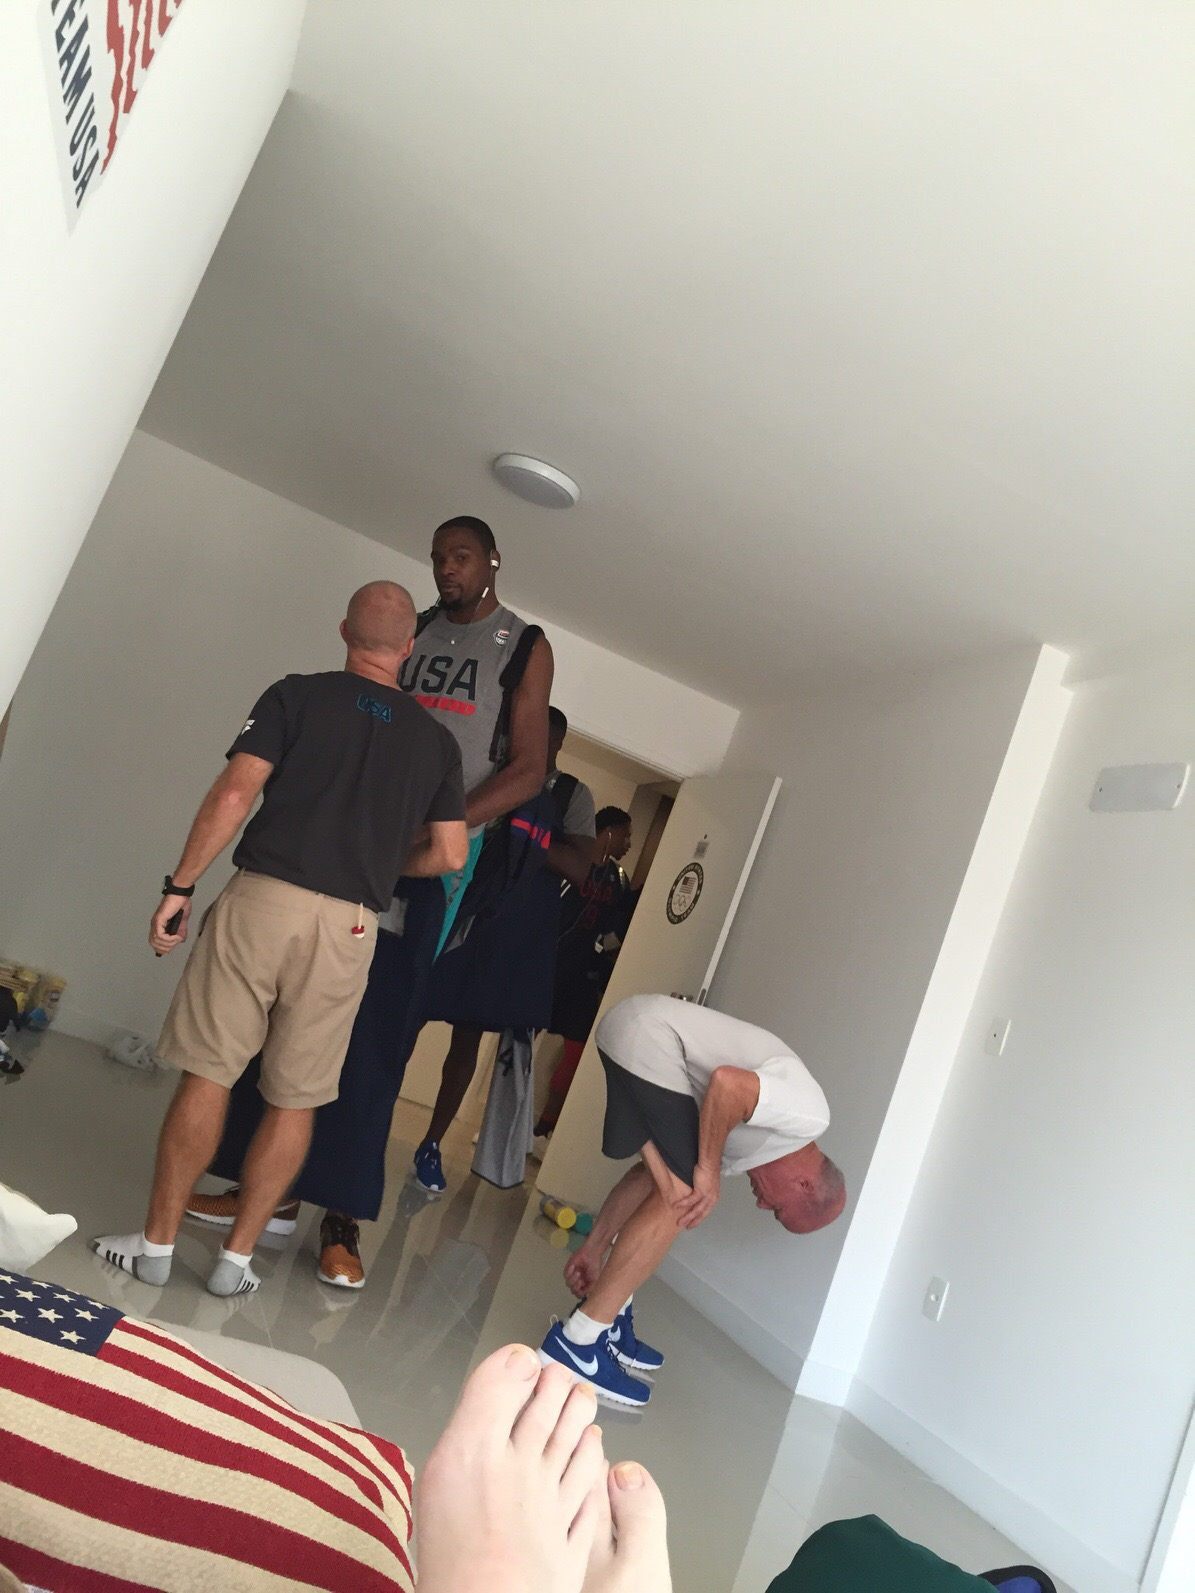 Kevin Durant and other U.S. basketball players visit U.S. coaches dorm room at the Olympic Village